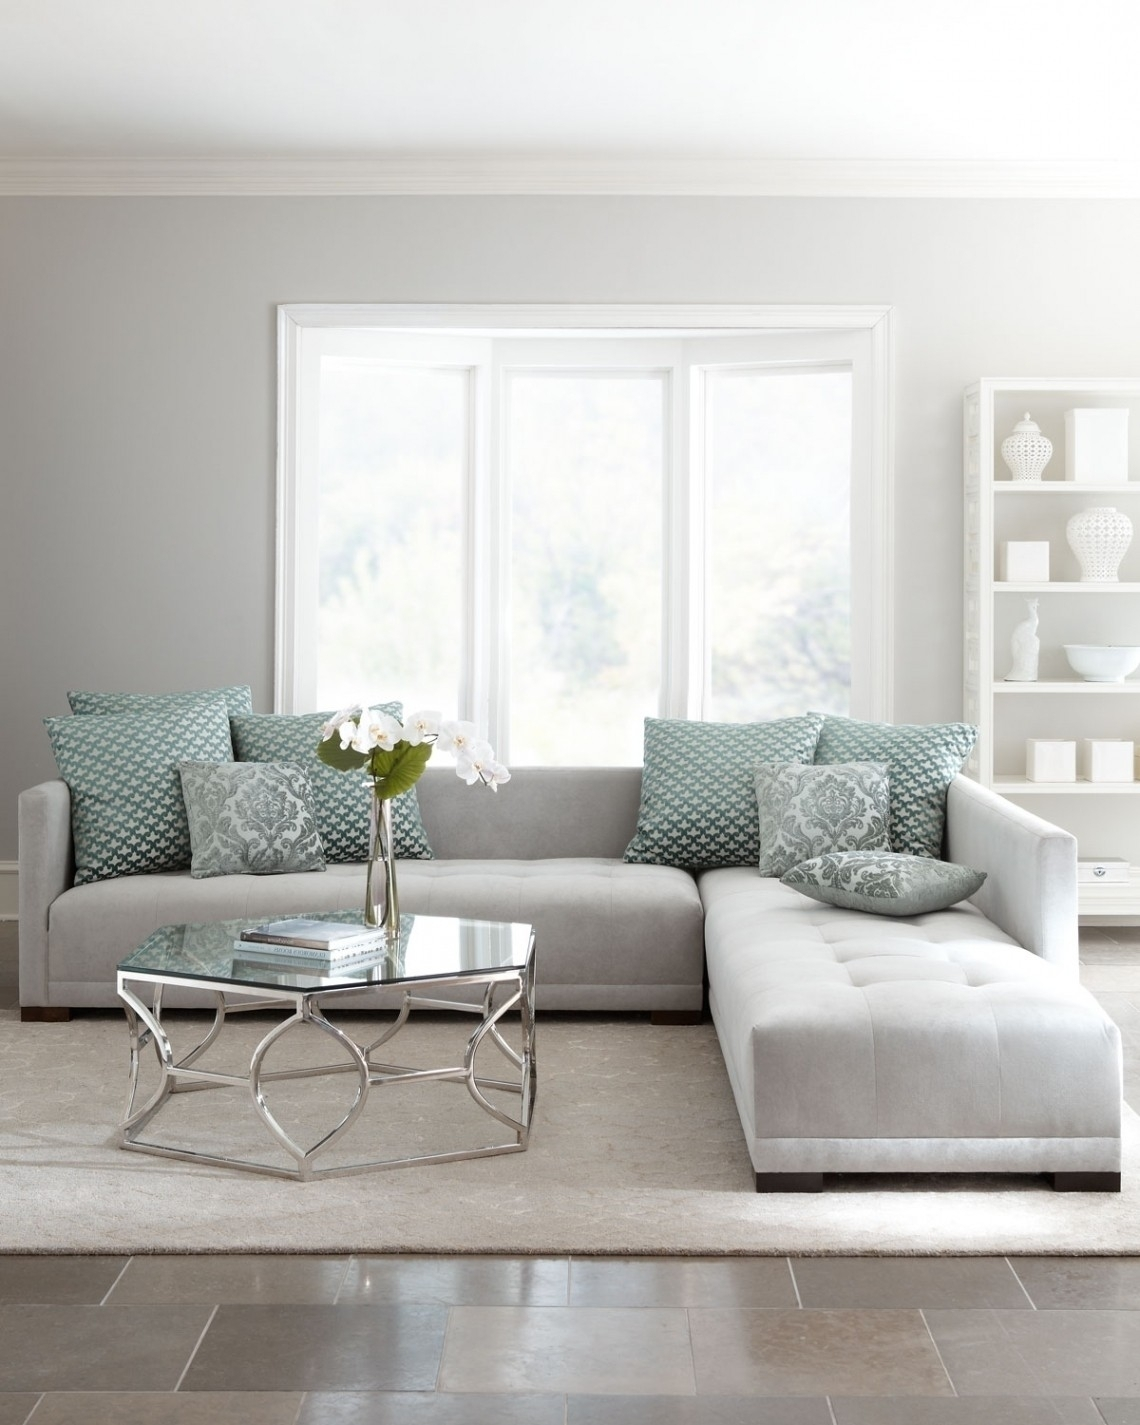 Light Grey Sectional - Implantologiabogota.co in Aquarius Light Grey 2 Piece Sectionals With Raf Chaise (Image 18 of 30)